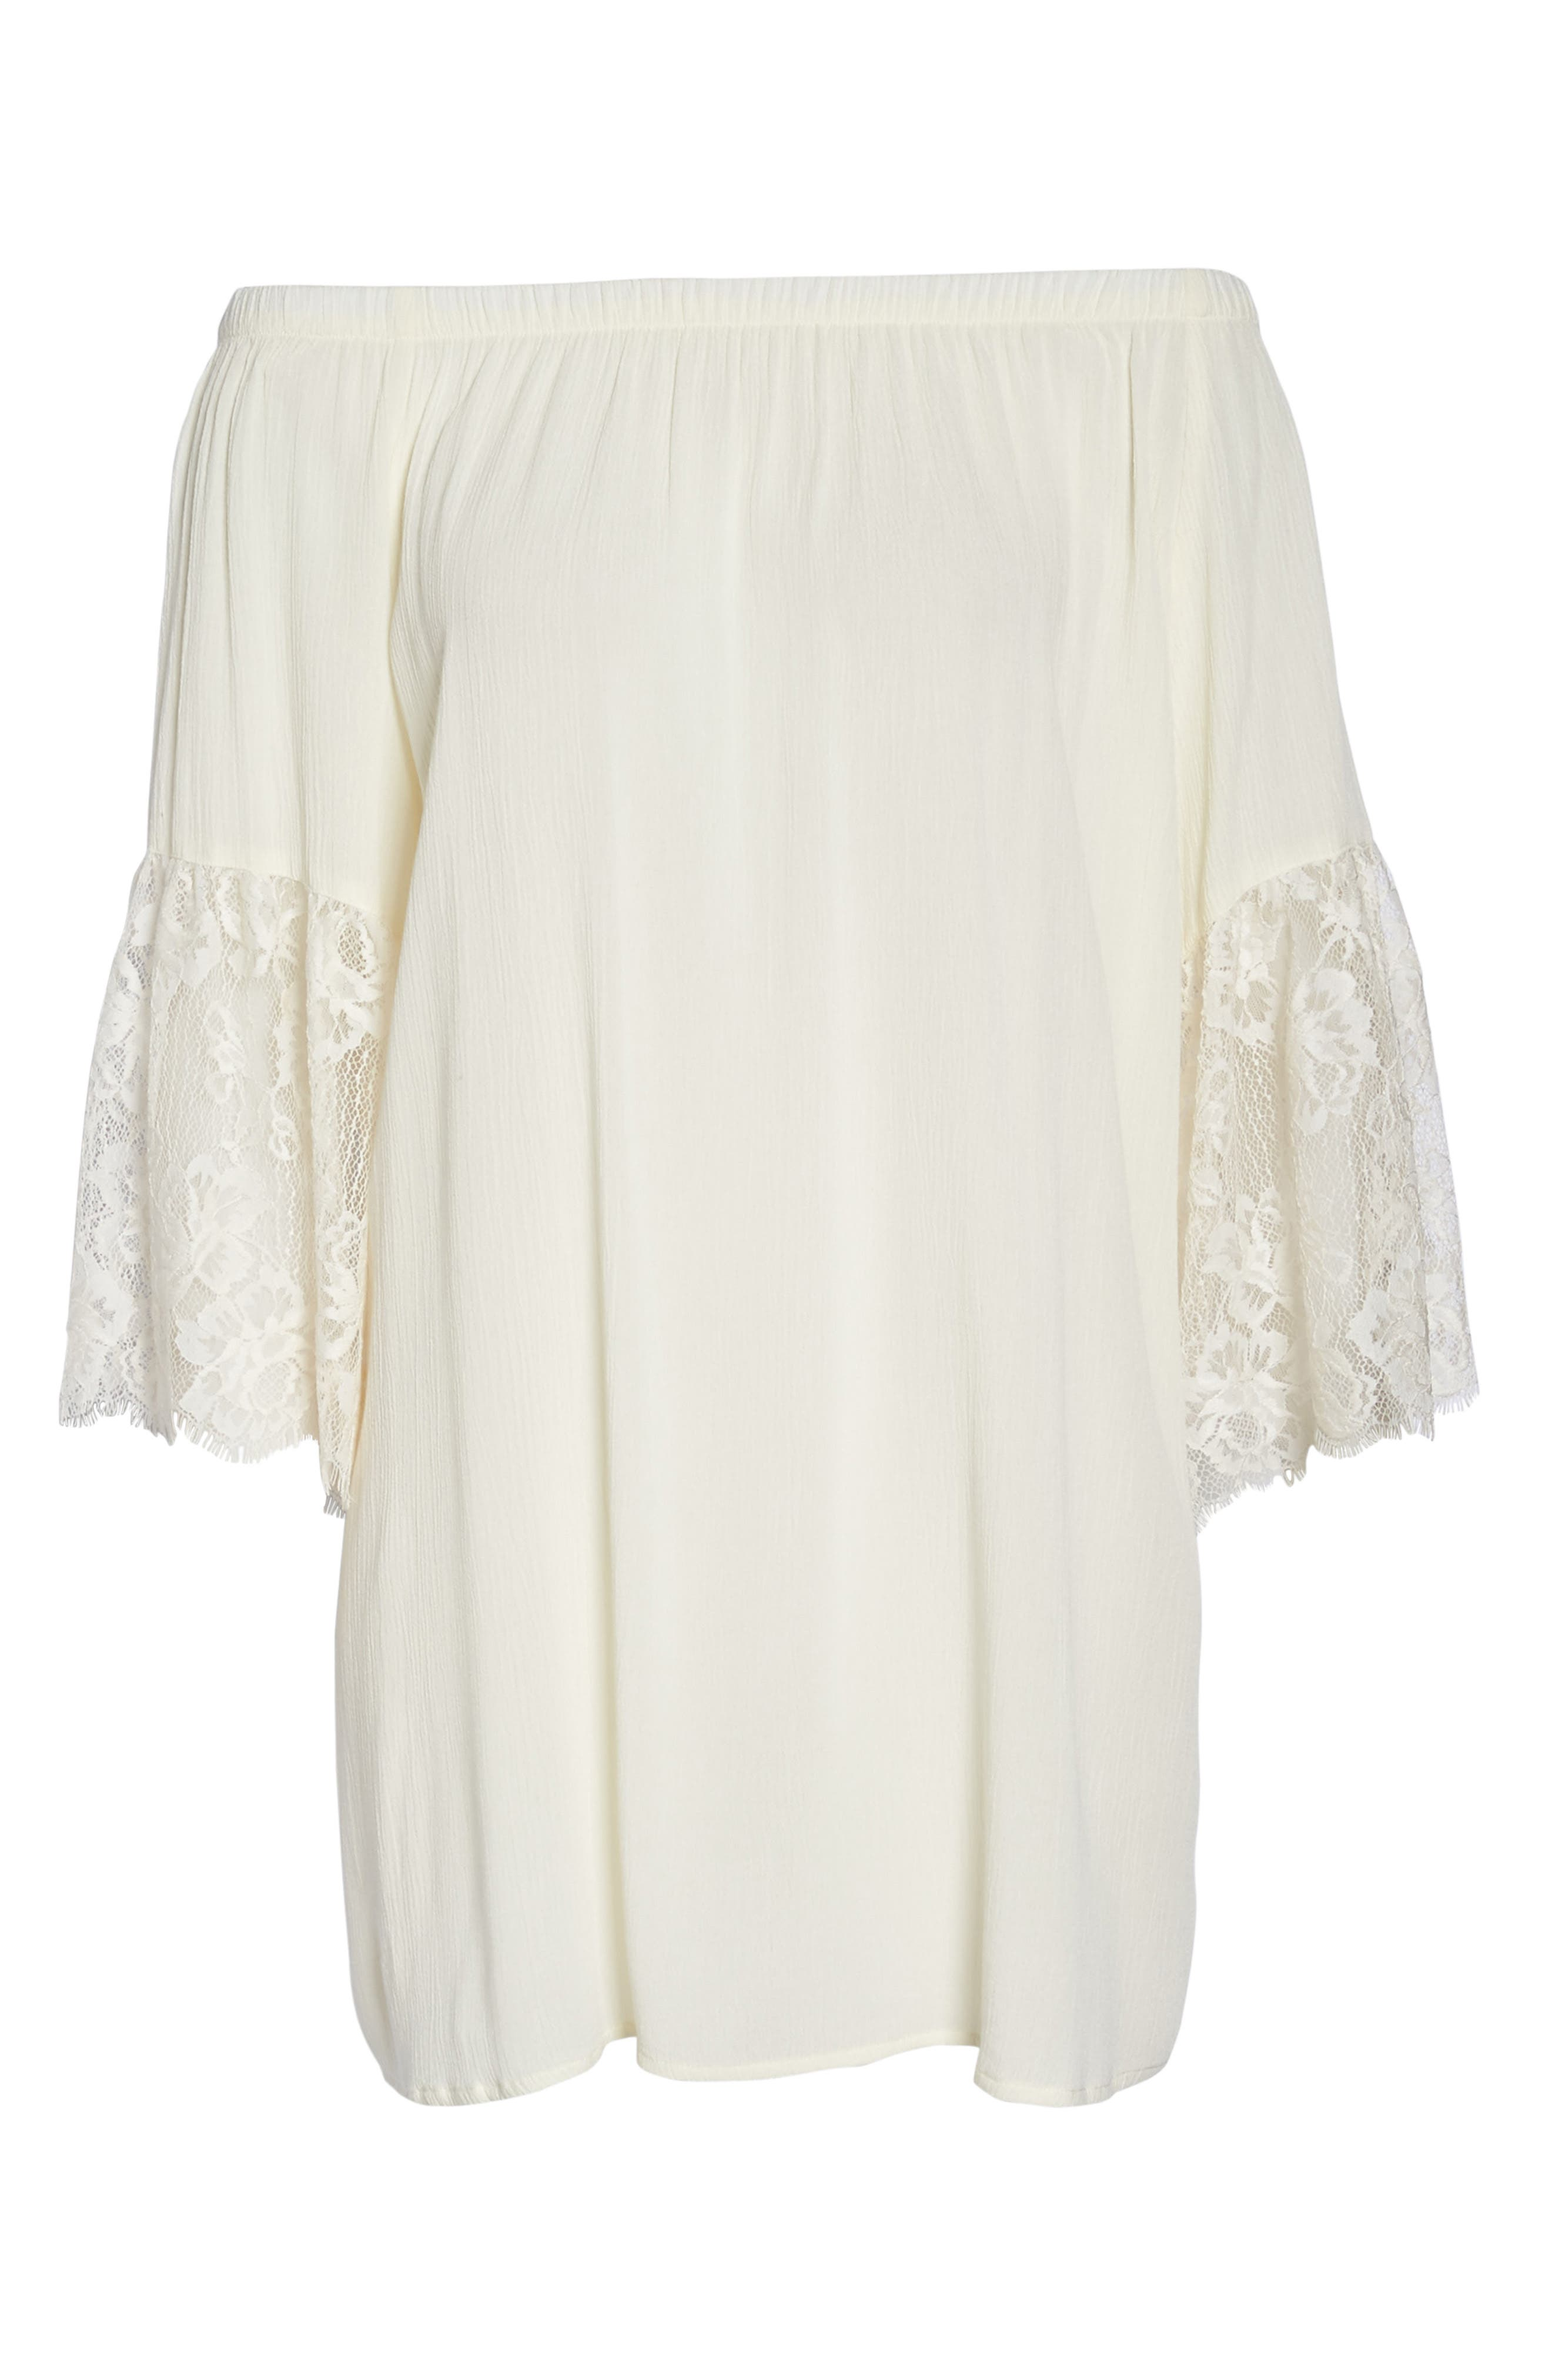 Off the Shoulder Cover-Up Dress,                             Alternate thumbnail 7, color,                             Ivory Egret